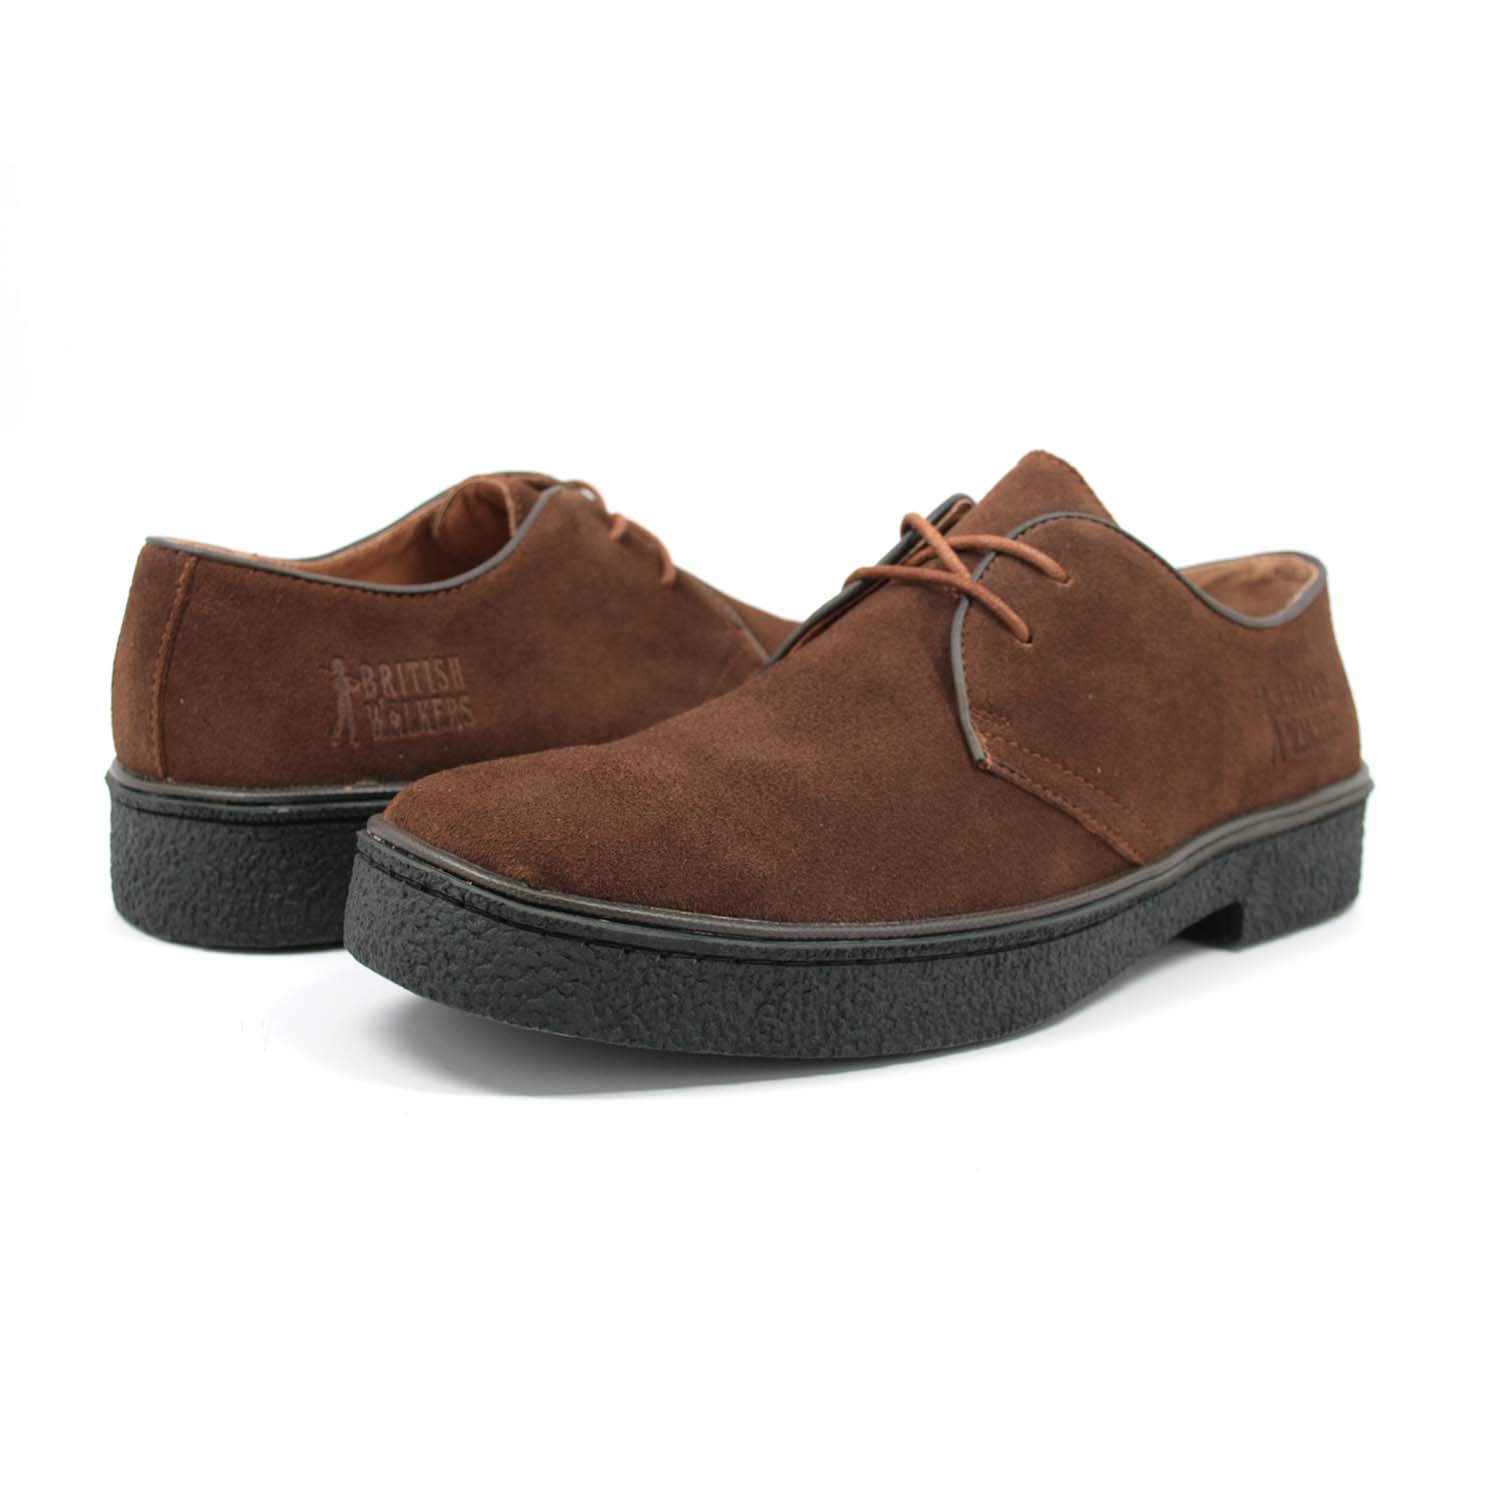 British Walkers Men's Playboy Low Cut Brown Suede